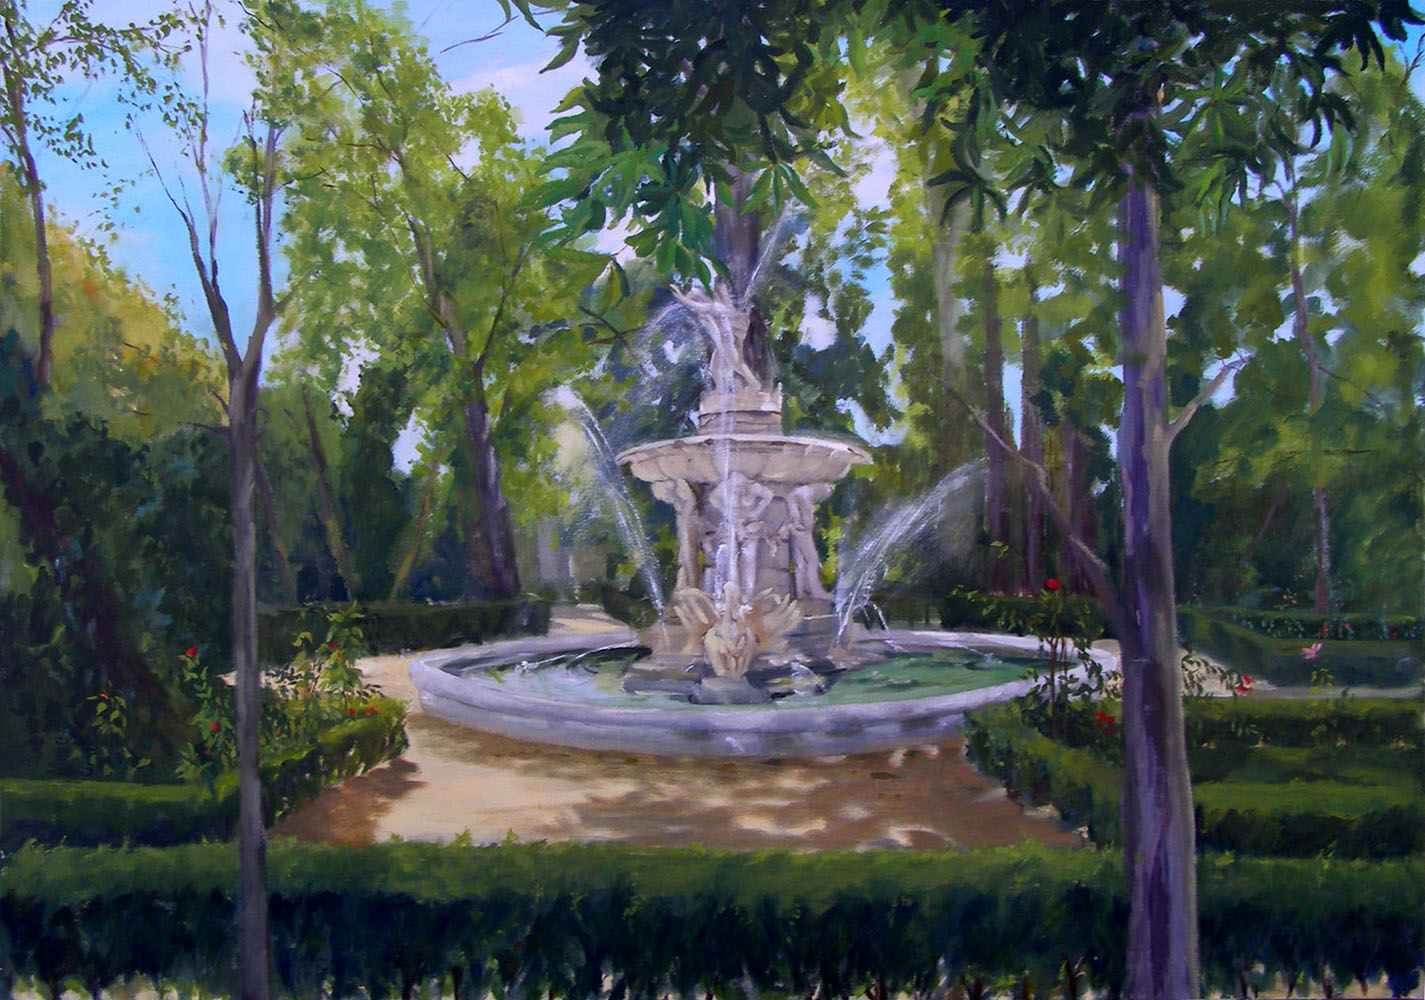 Large Oil Painting of Parque del Principe in Aranjuez, Spain. There is a stone fountain in the center of the painting with a statue of Narciso on the top and the base is made up of 4 statues of Atlas holding up the base of the dish. There are also large birds perhaps geese in the pond shoot up water high in the air.